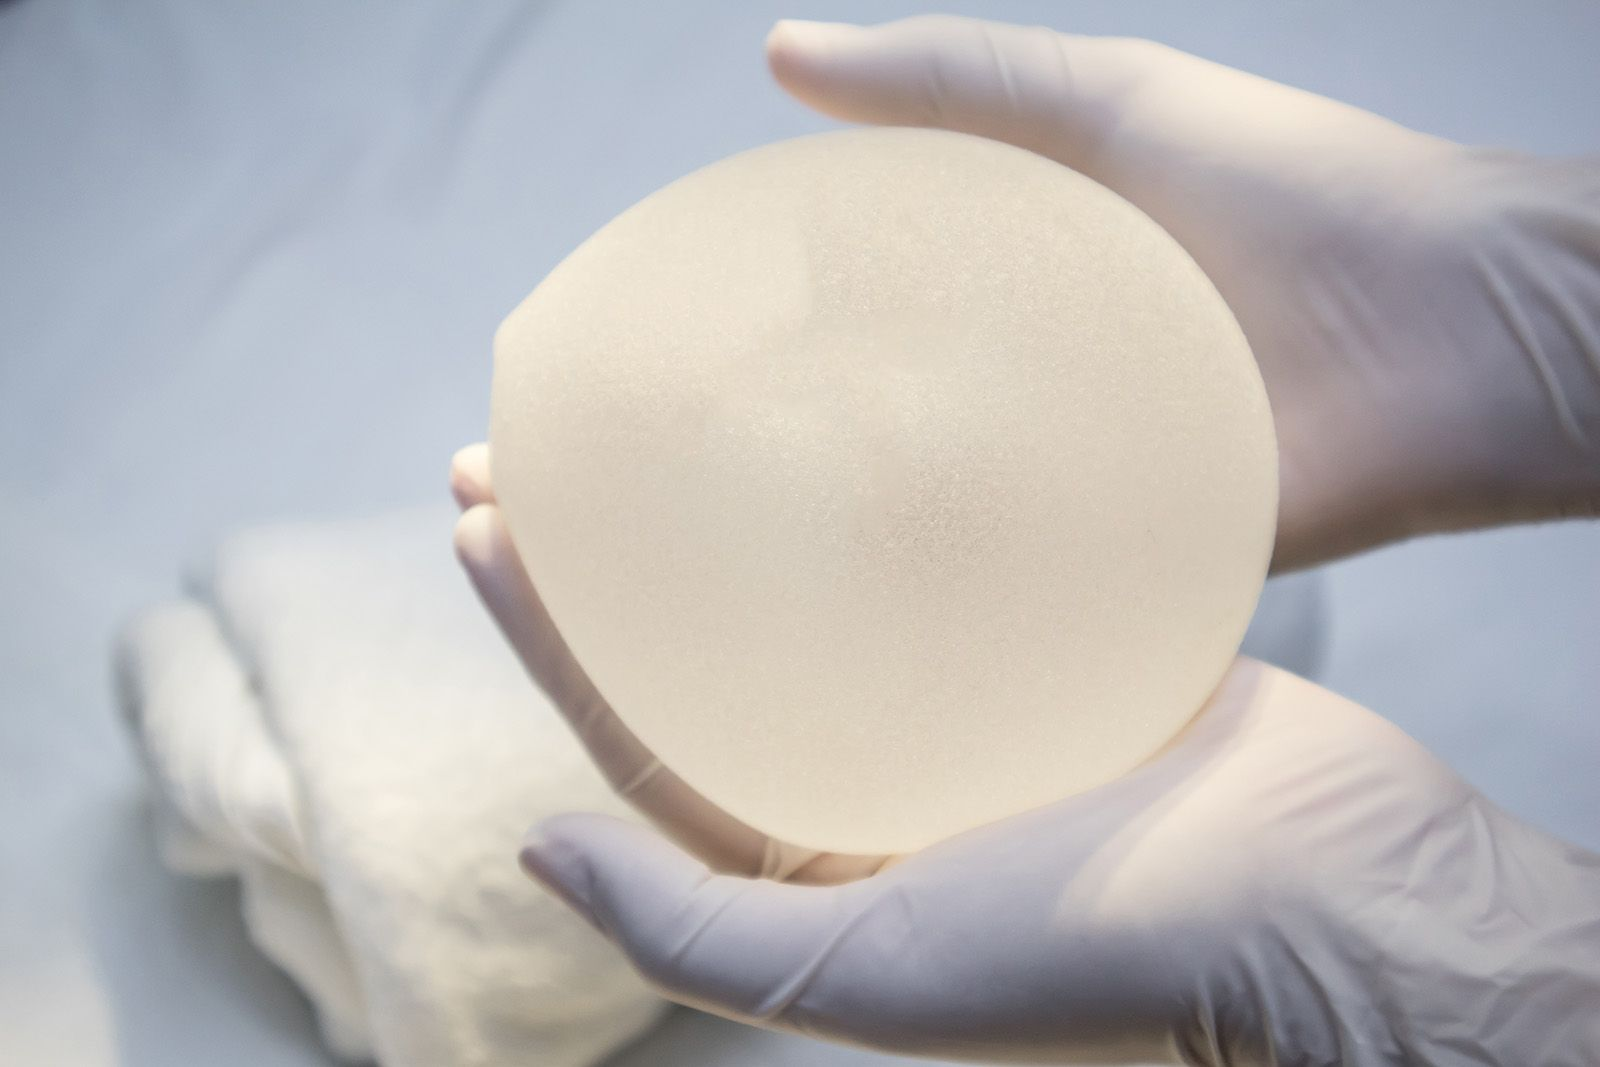 Up close photograph of a medical professional holding a breast implant